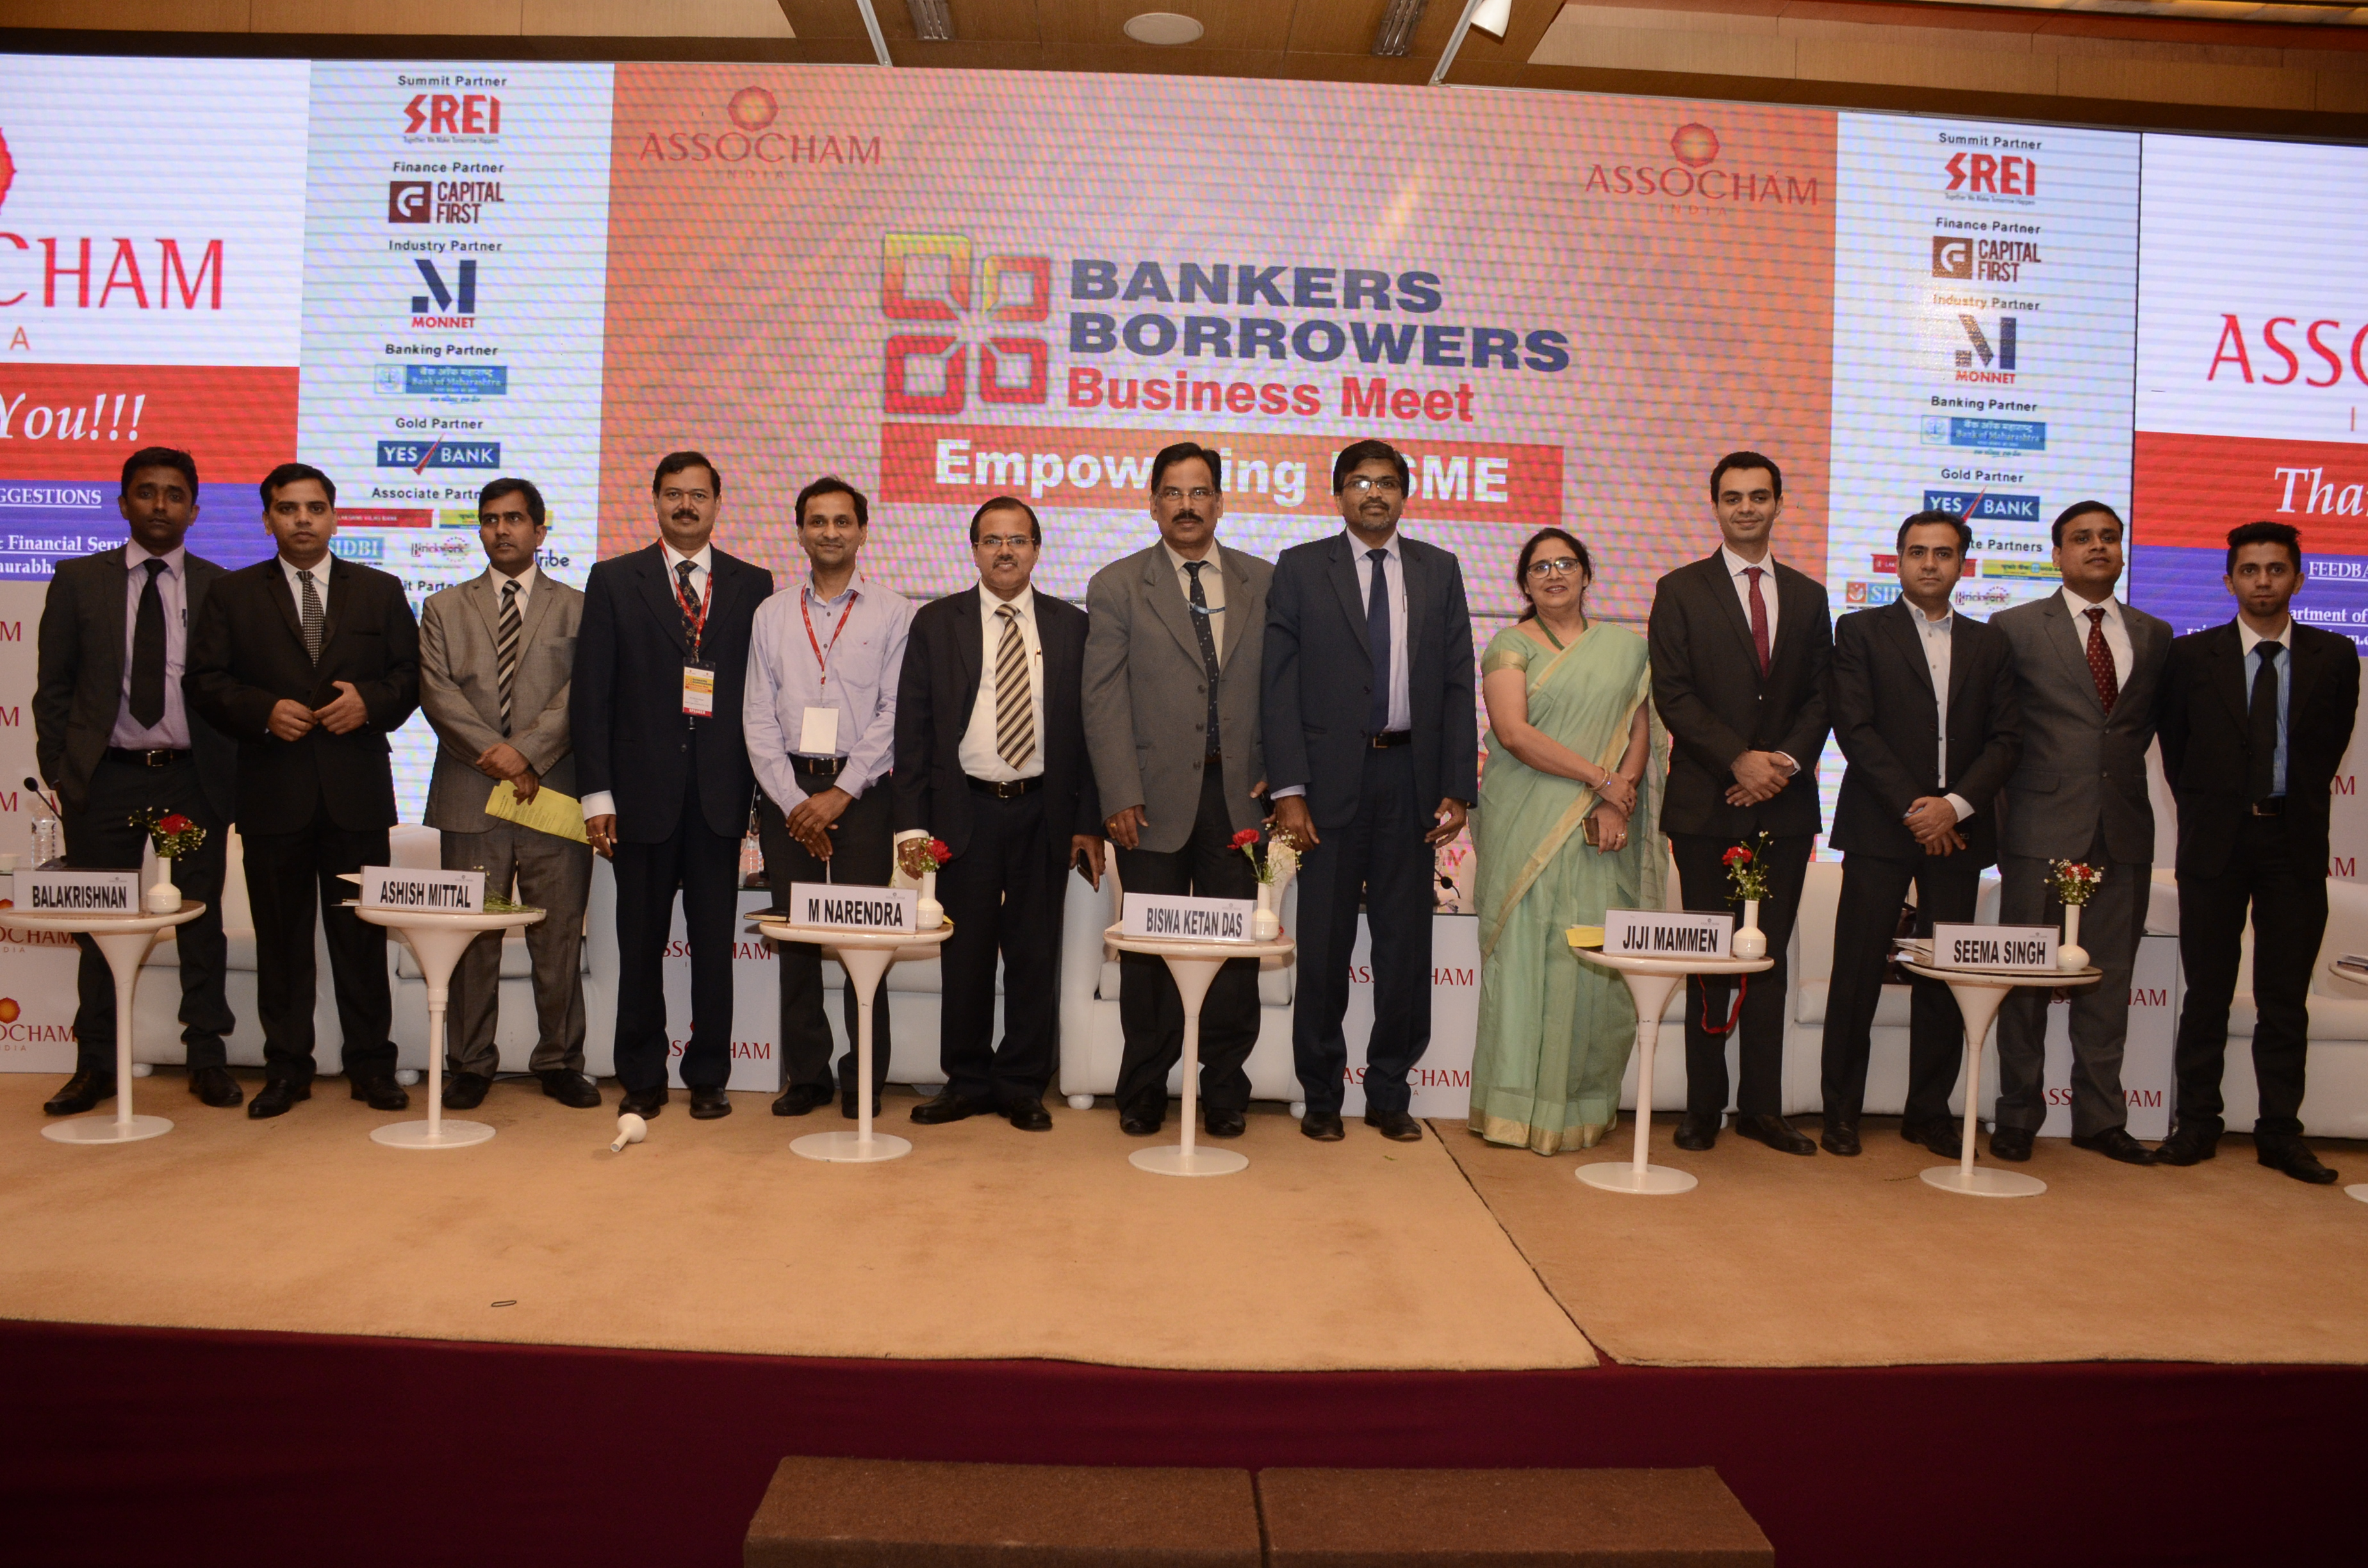 ASSOCHAM Bankers Borrowers Business Meet